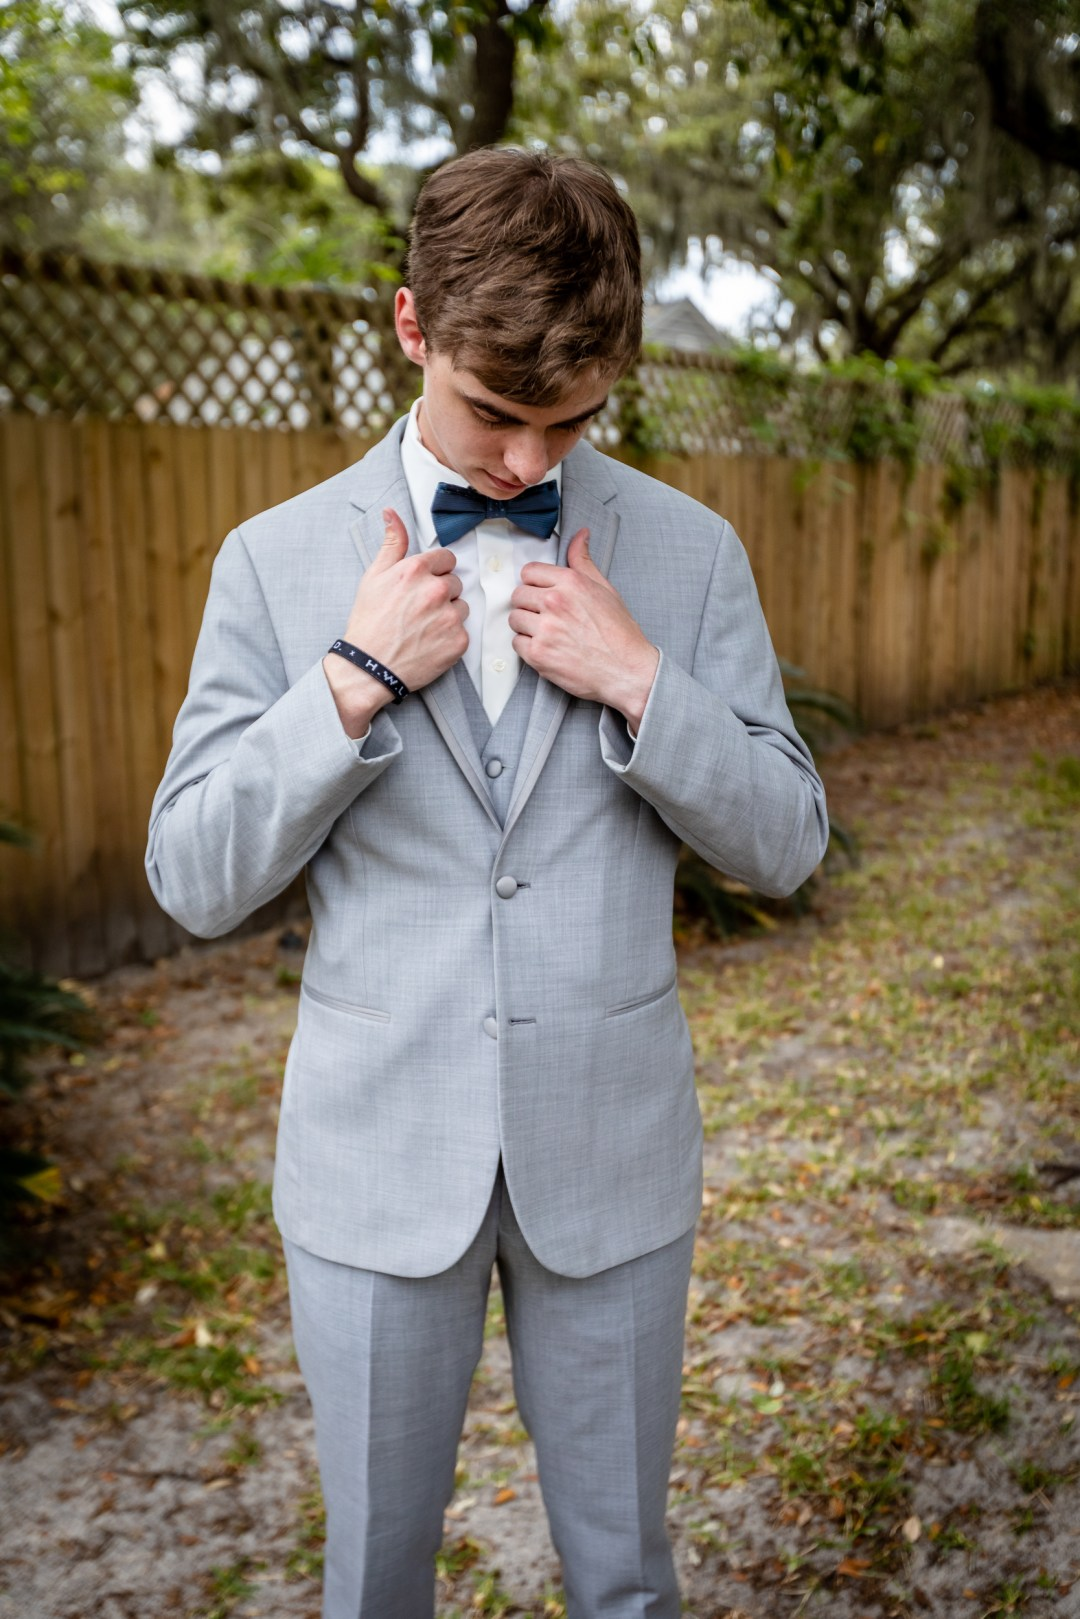 groom adjusting tuxedo jacket on wedding day